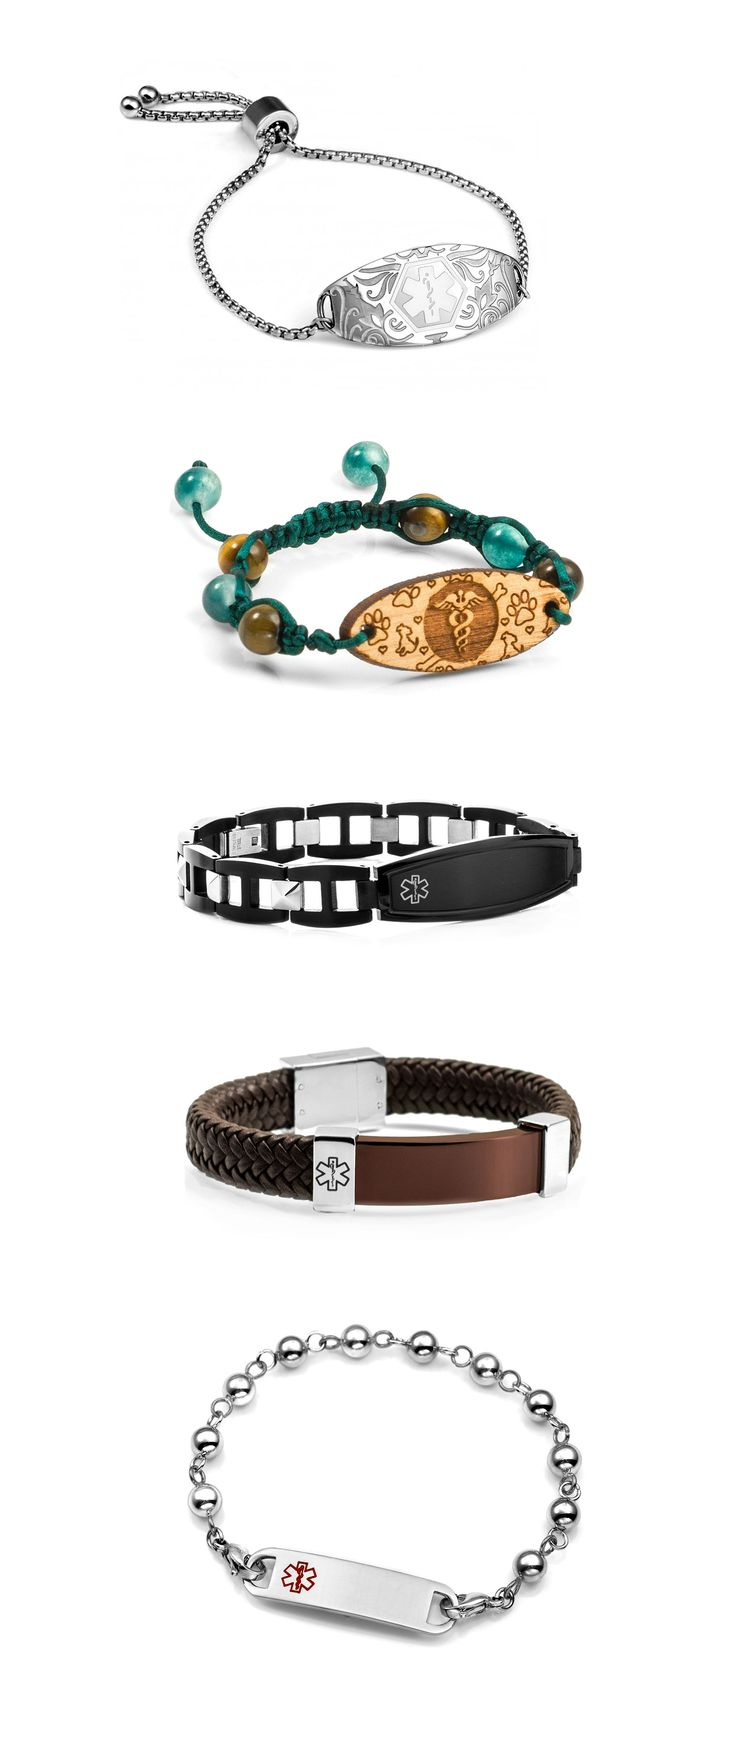 These are some of our best sellers for medical alert bracelets for men and women